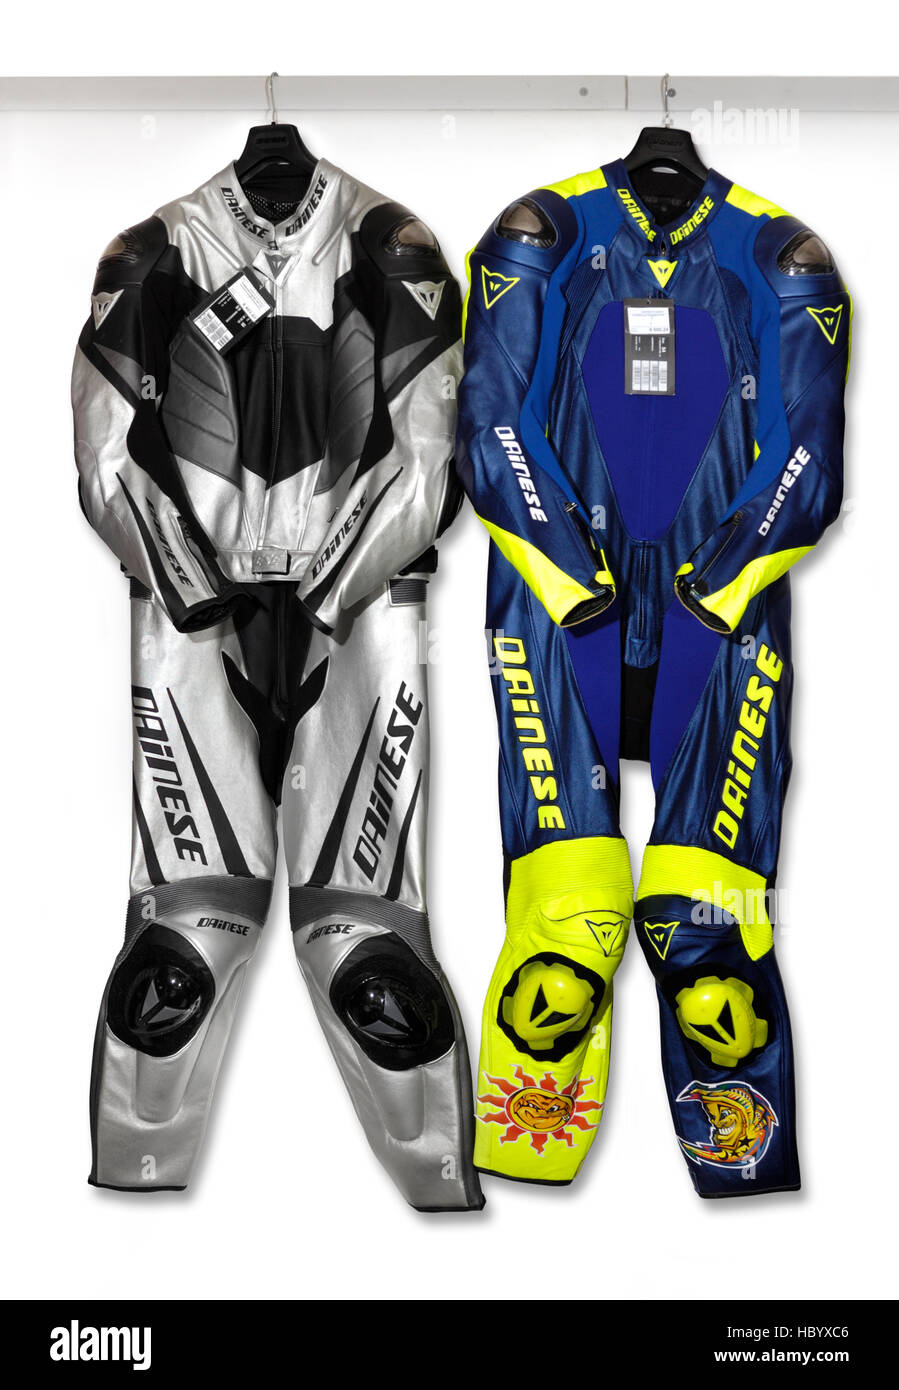 Motorcyclist sports suits hanging on a wall - Stock Image